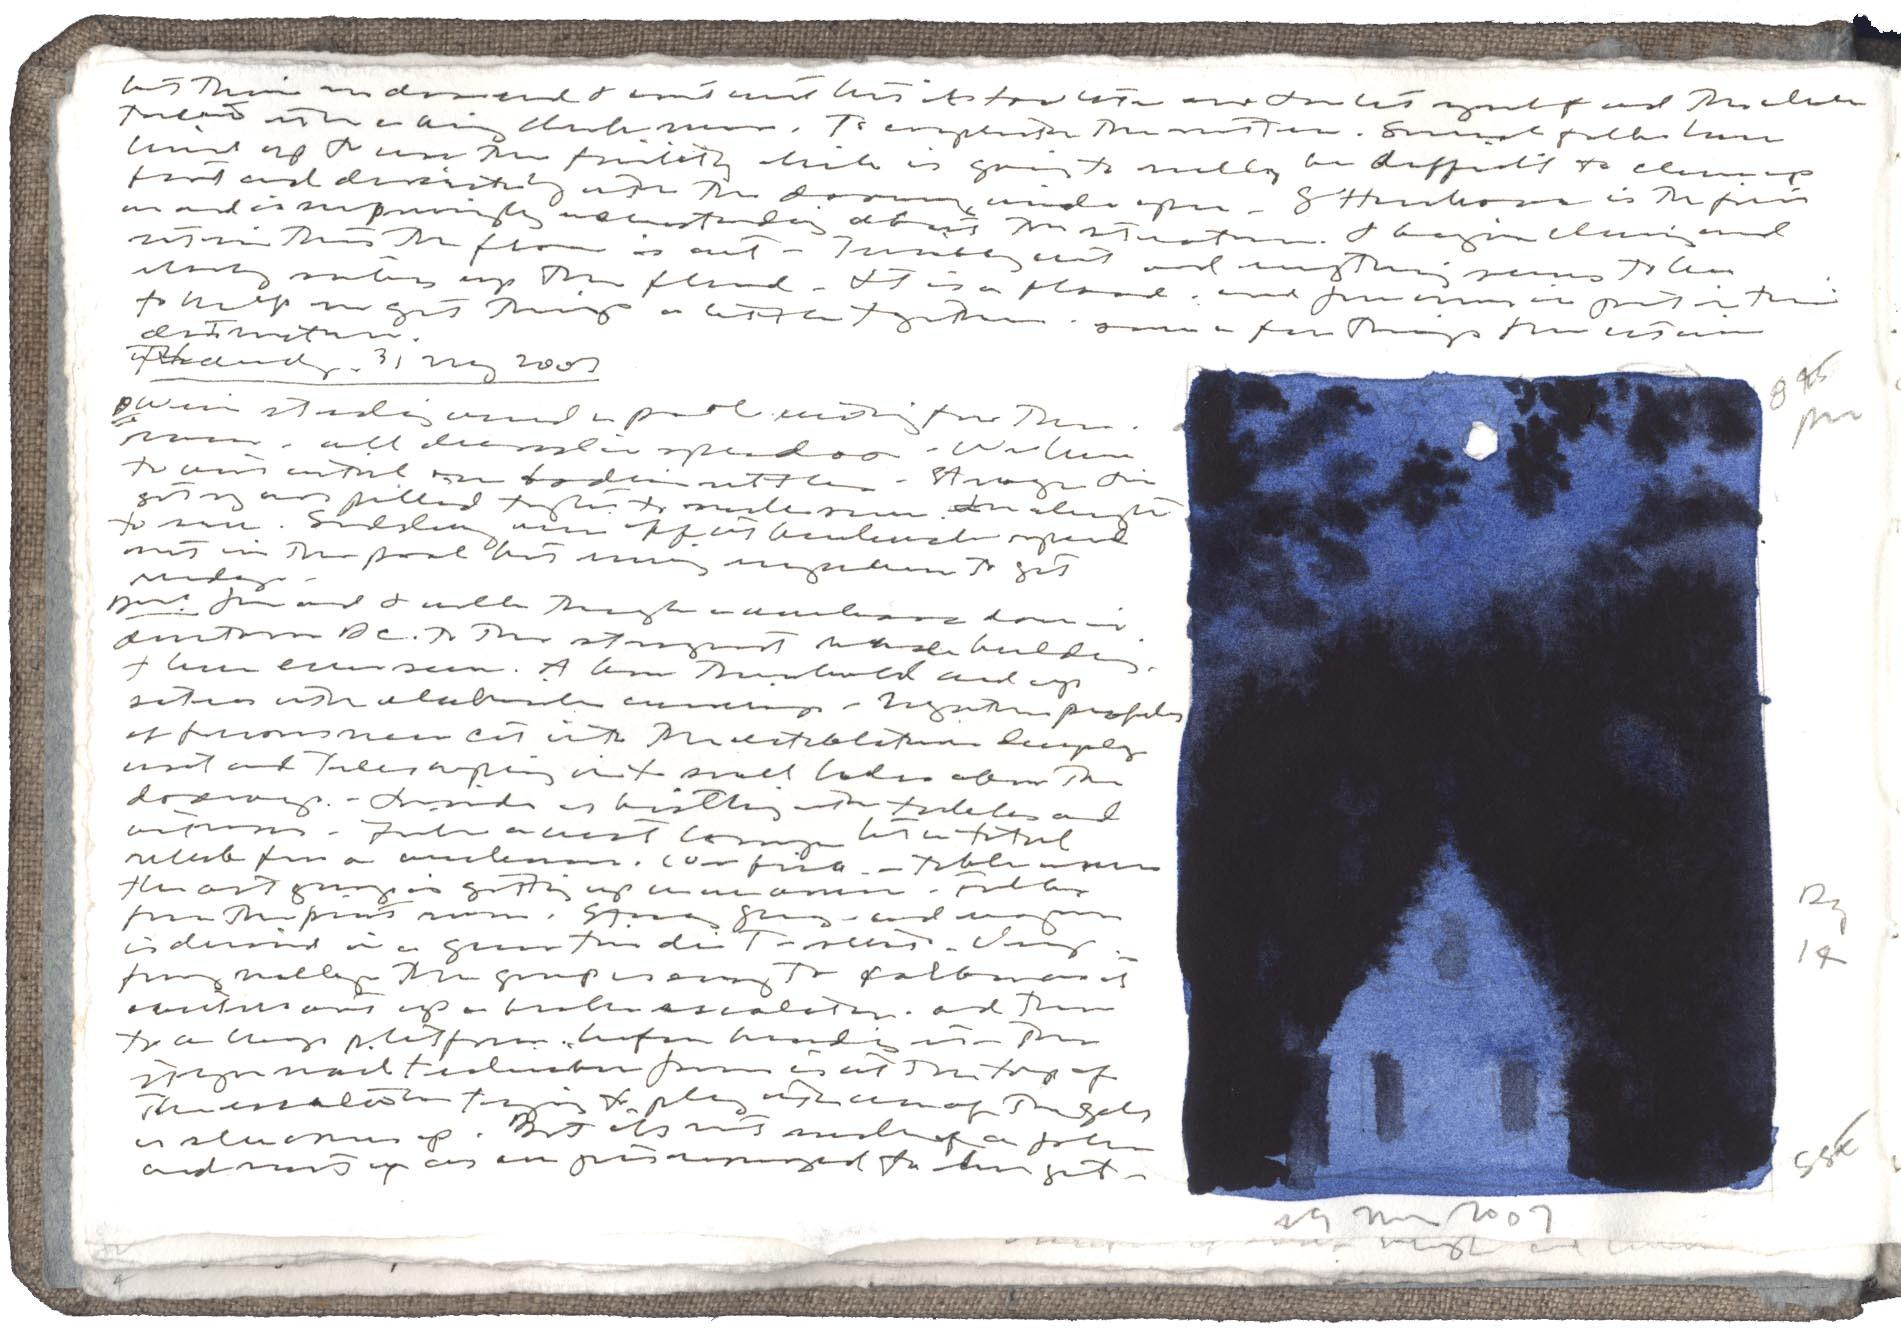 Study of Moon and House image